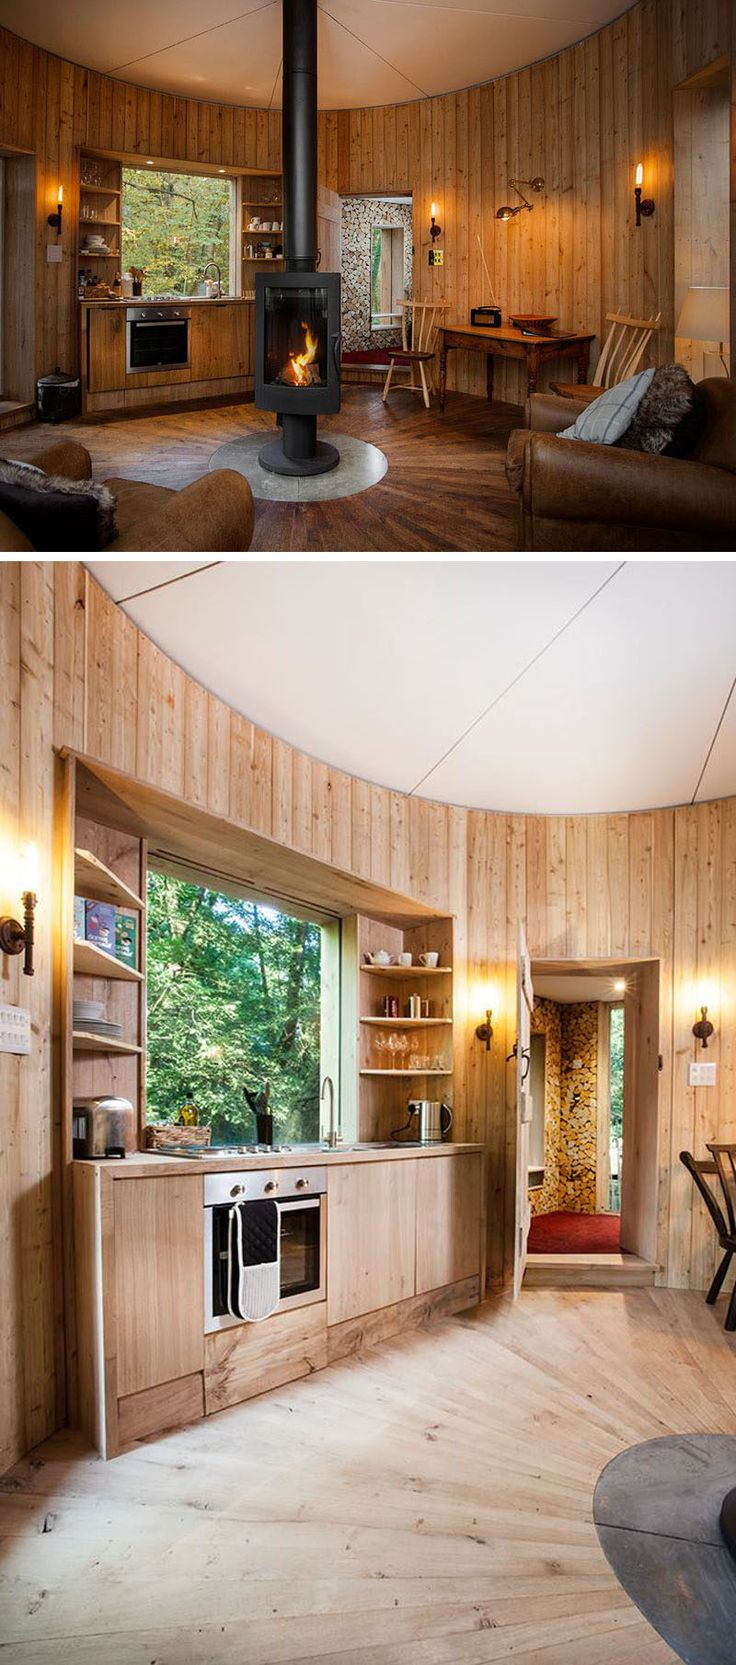 This modern treehouse has a living area with a central fireplace, comfortable seating and a kitchen area with a large window.